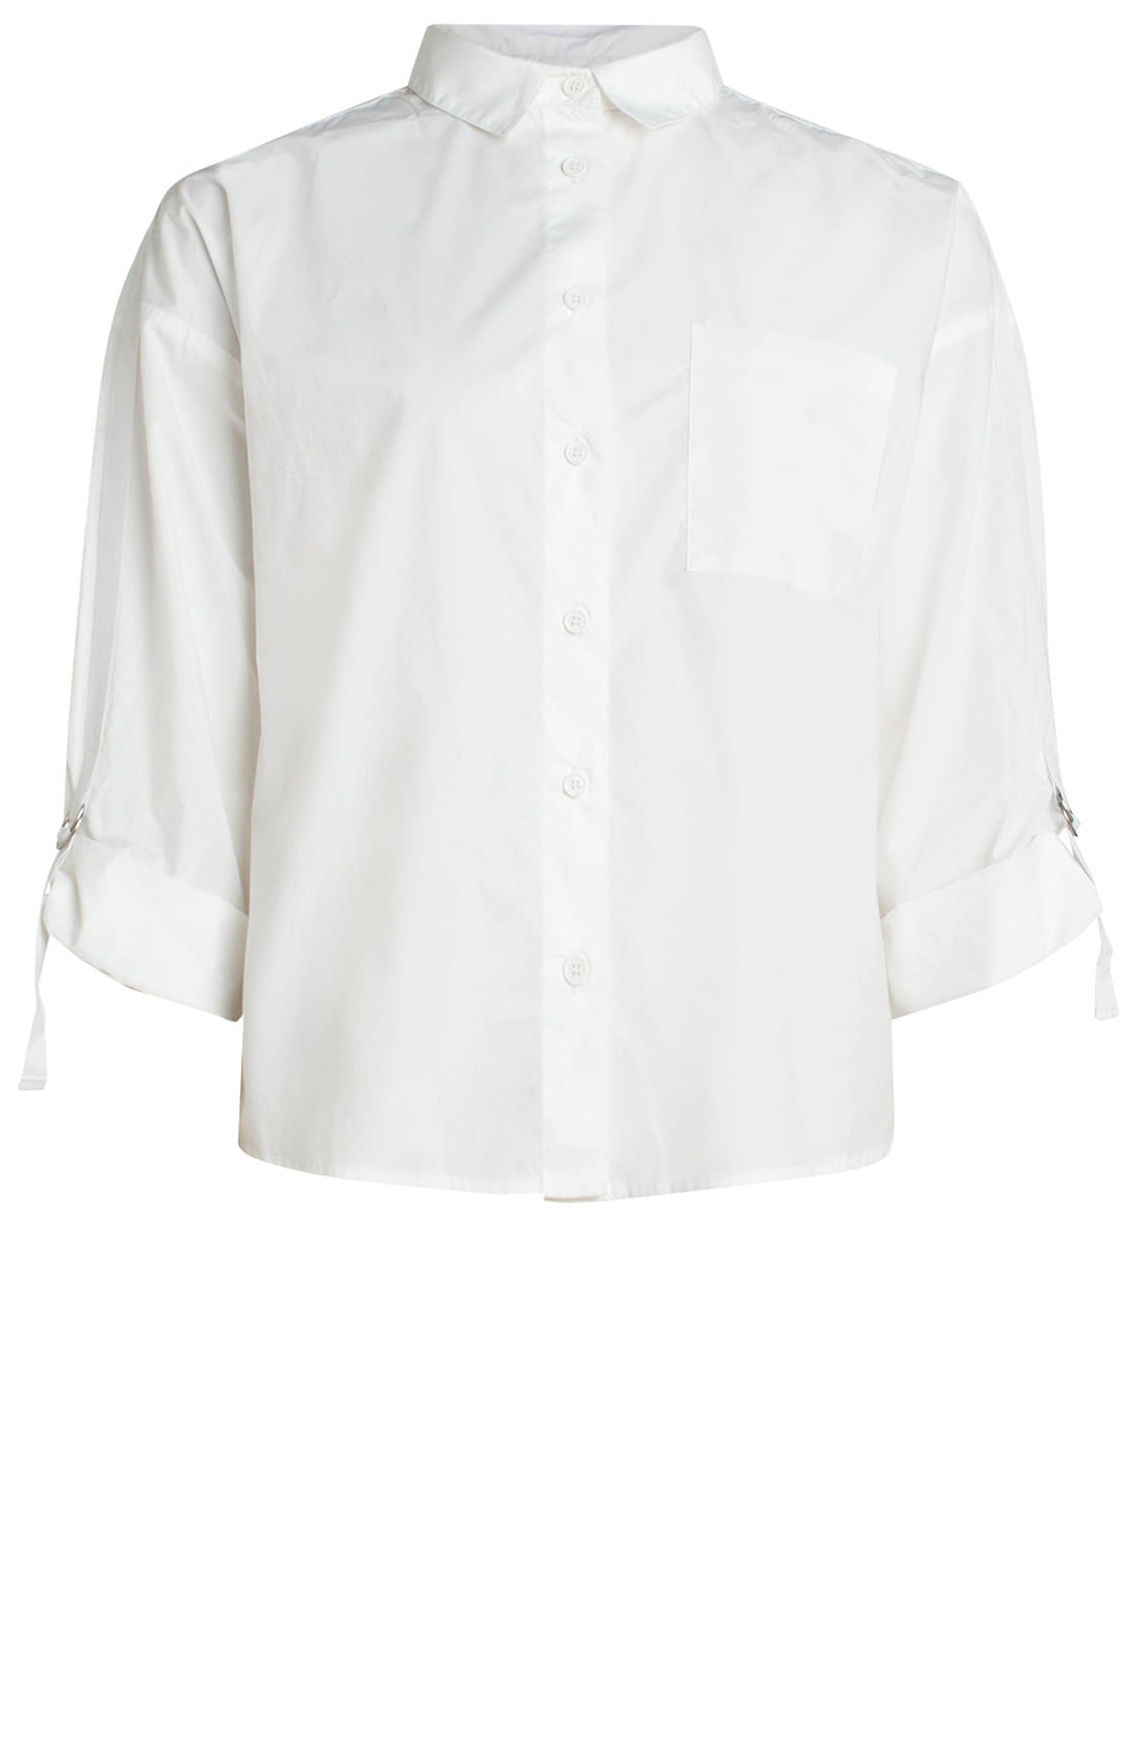 Anna Dames Blouse wit